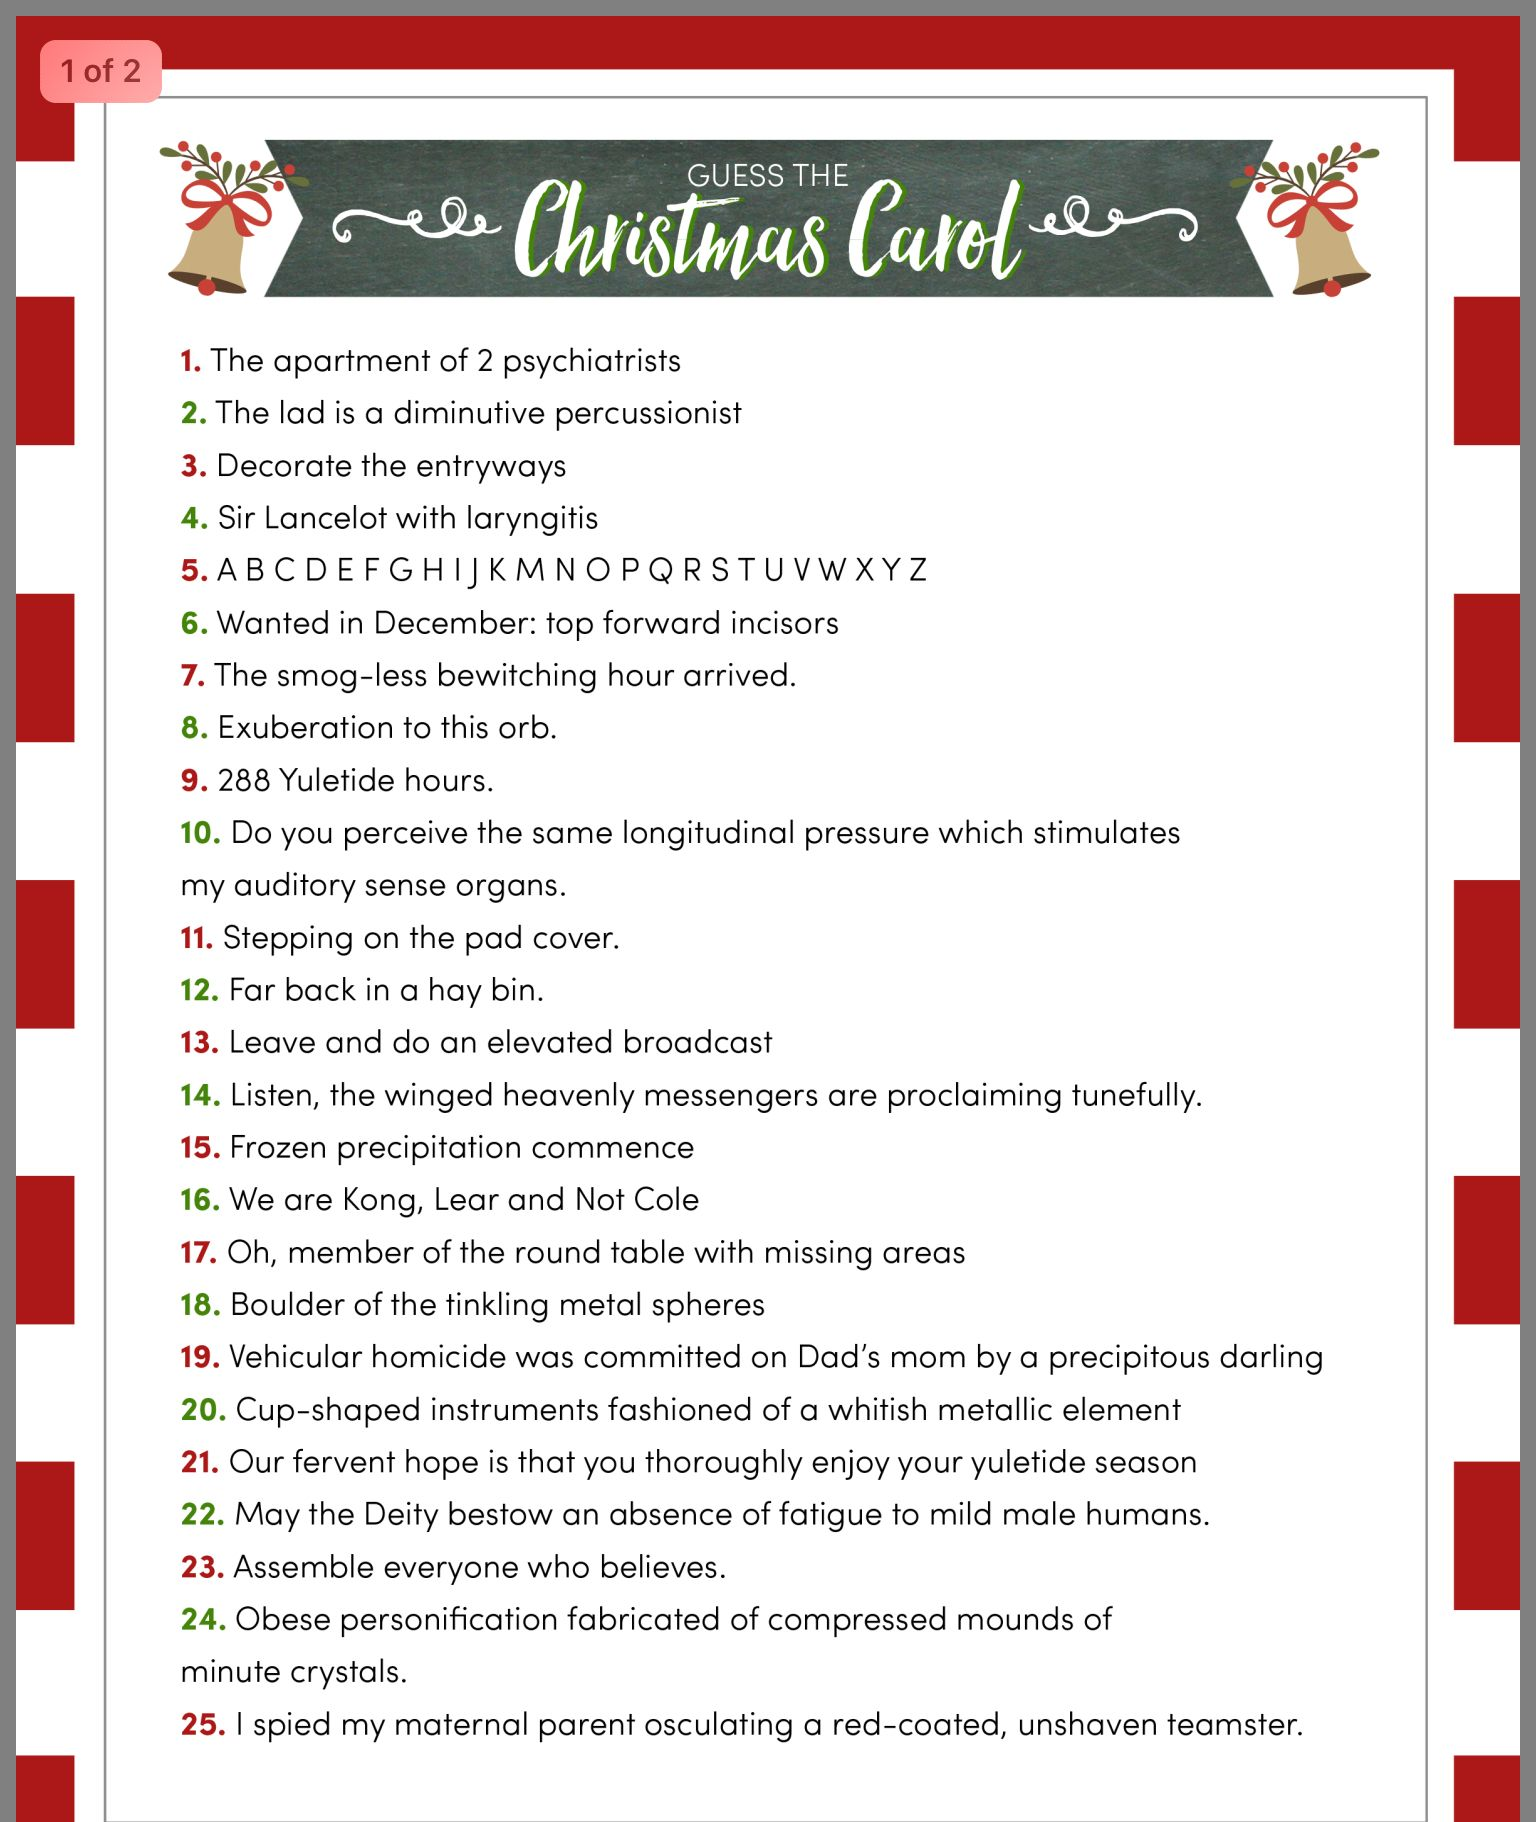 Pin by Karen Morrison on Party games Christmas trivia